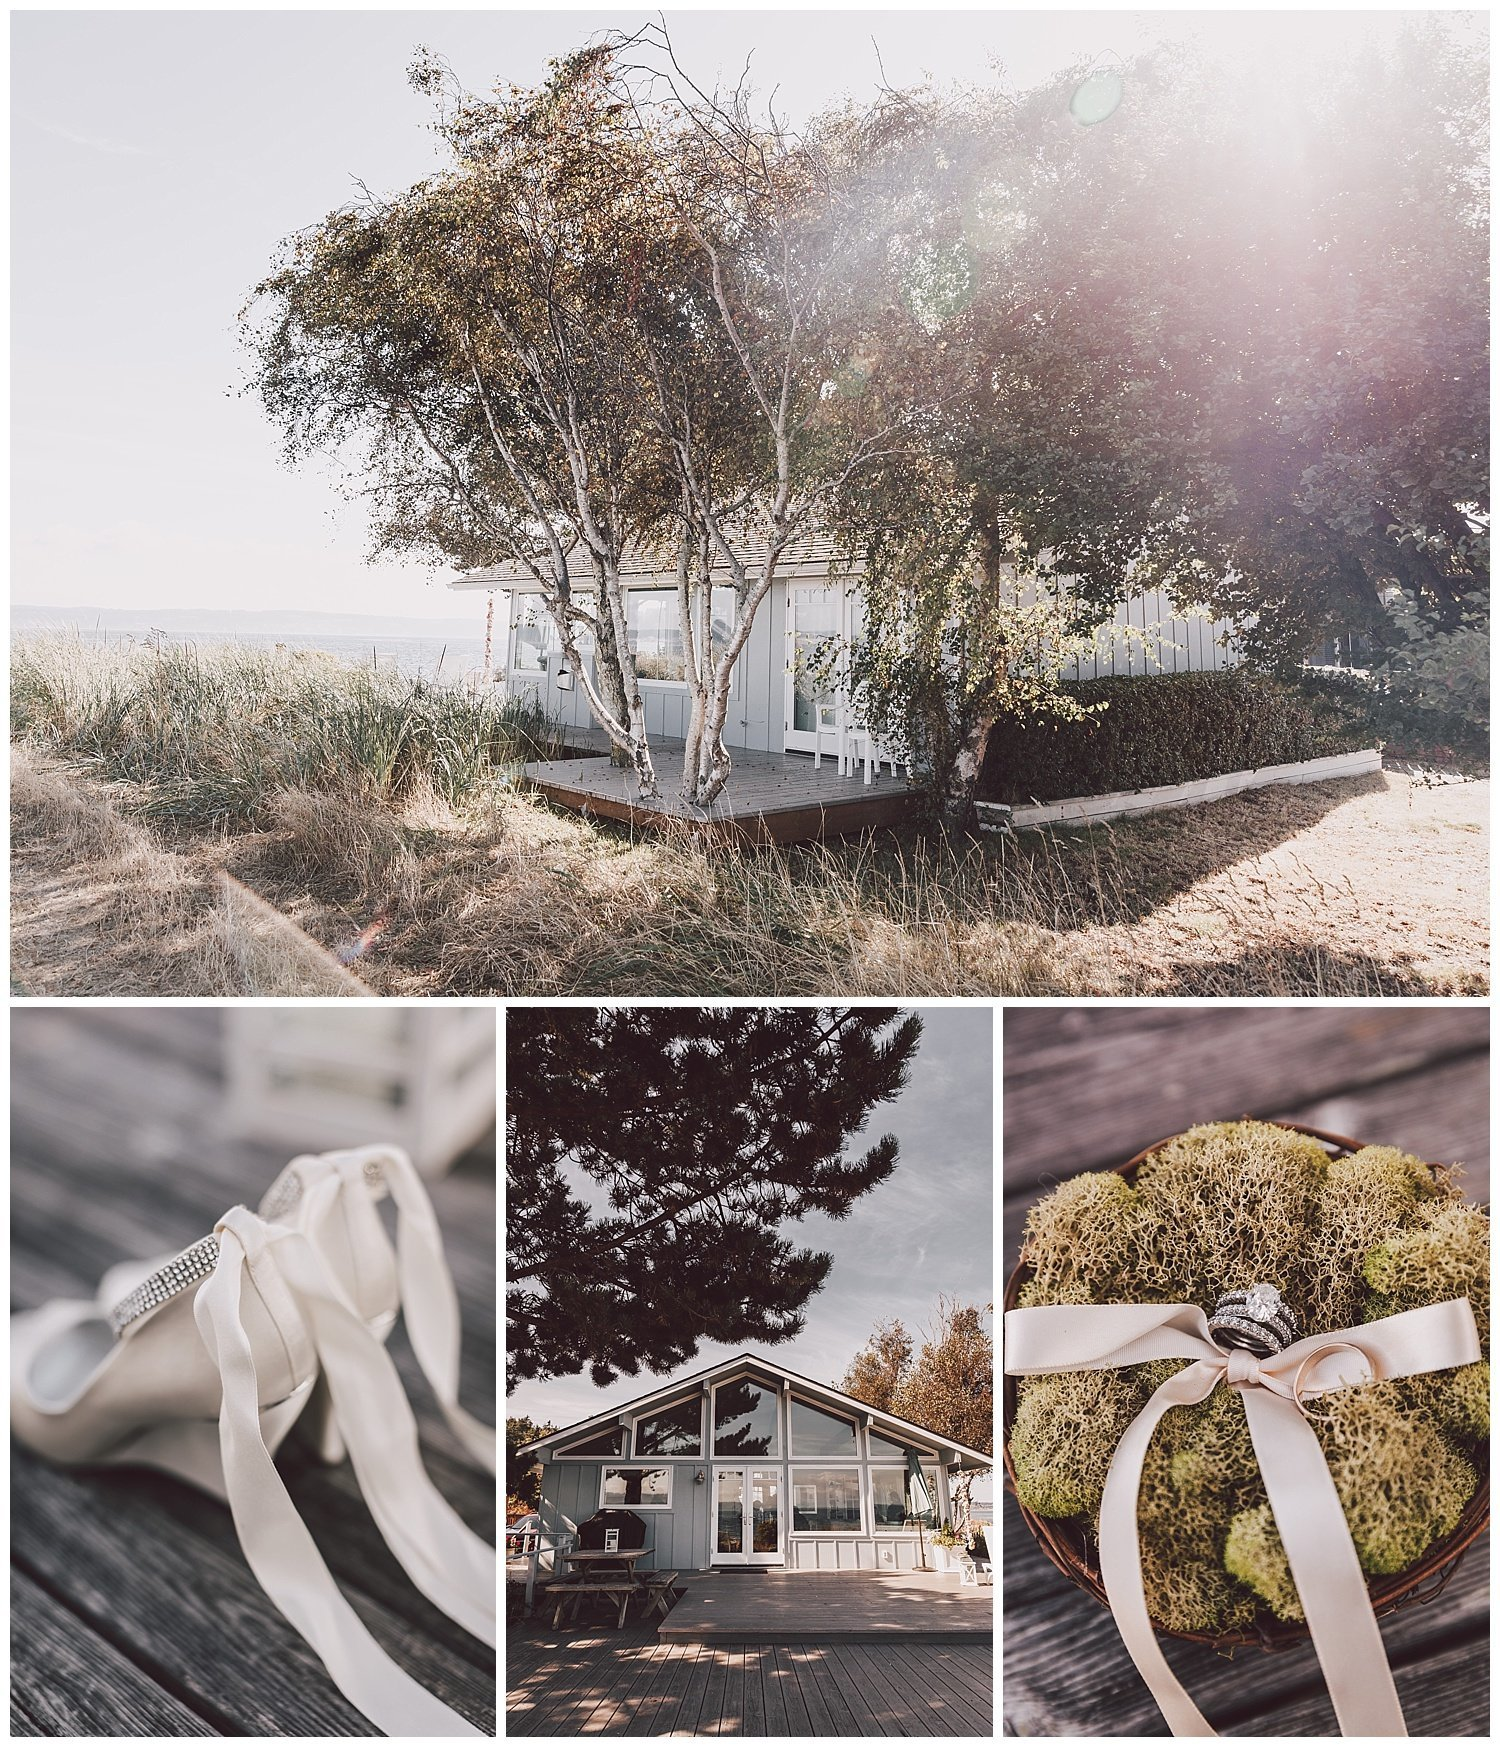 crockett-farm-wedding-whidbey-island-luma-weddings_0002